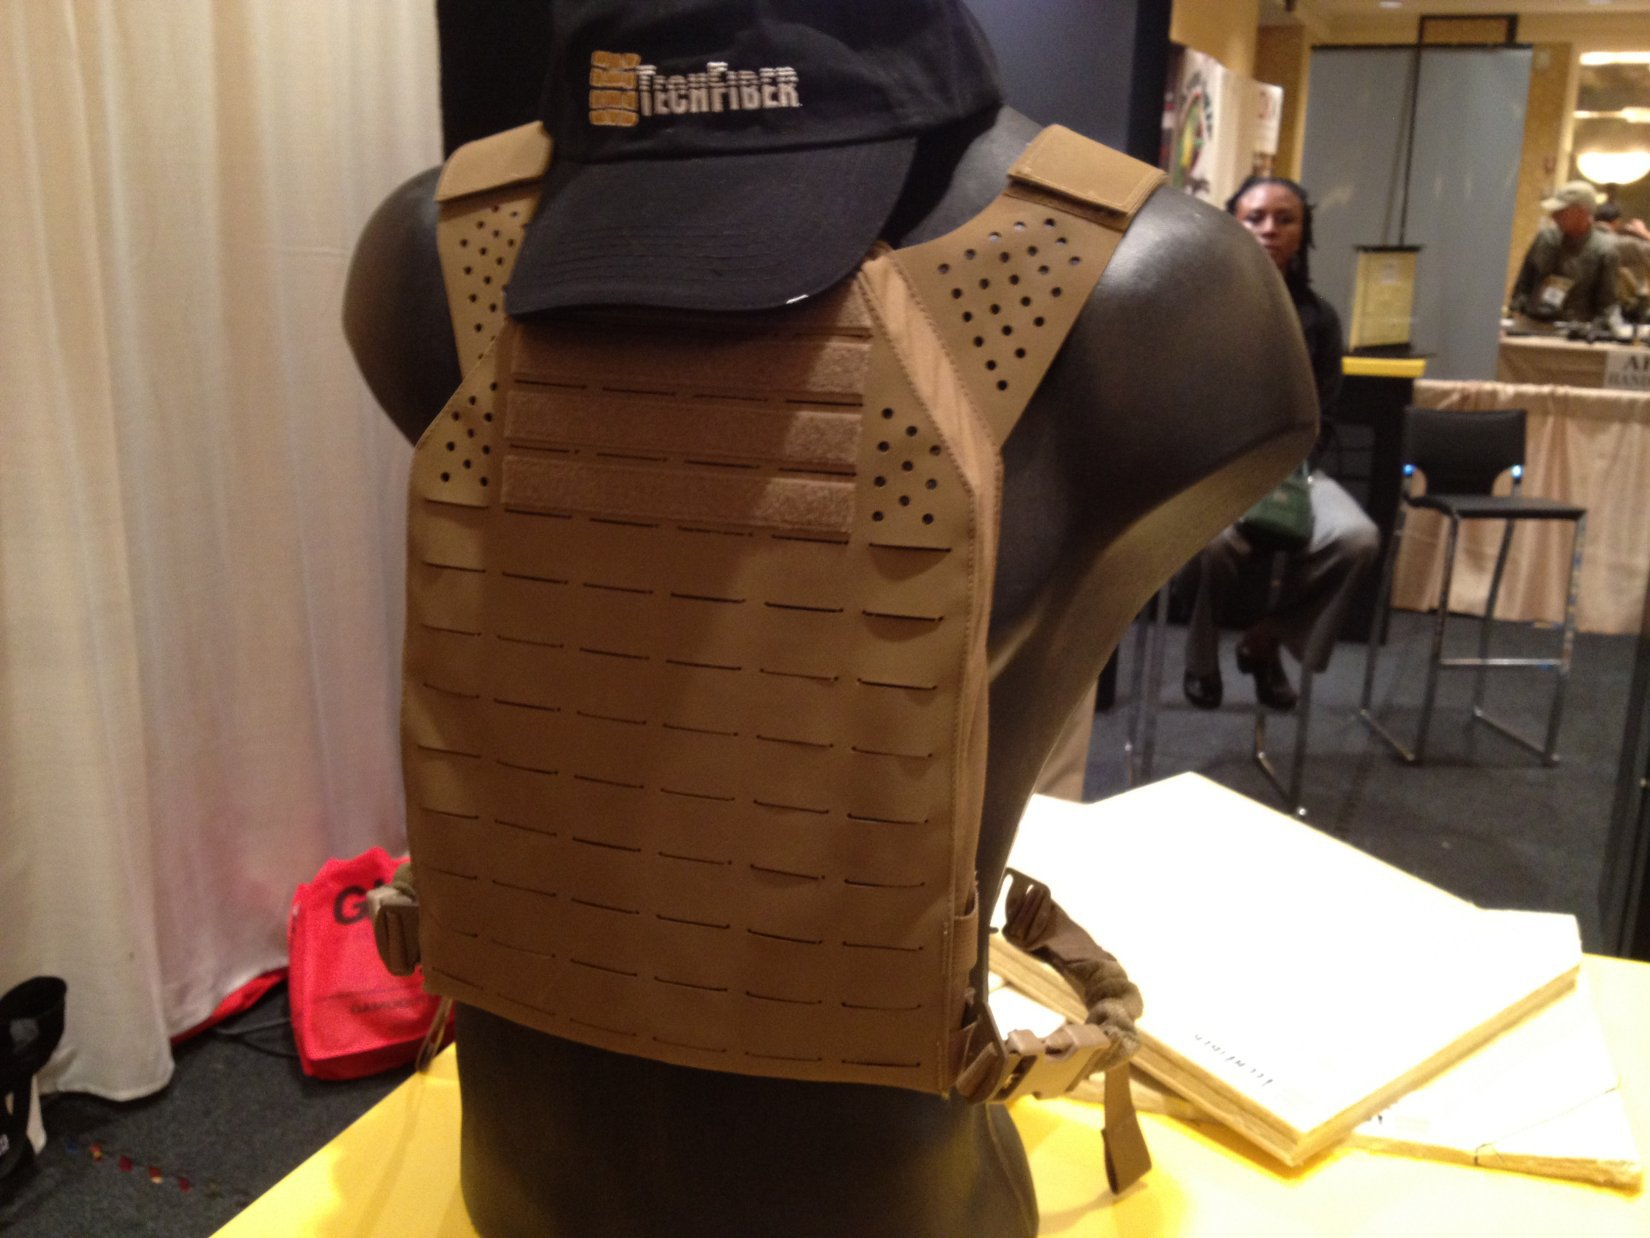 TechFiber T Flex SH Unidirectional Aramid Fiber Ballistic Fabric with Twaron ArmorWorks Modular Plate Carrier MPC SHOT Show 2012 DefenseReview.com DR 1 TechFiber T Flex SH/SA Unidirectional Ballistic Fabric with Teijin Aramid Twaron or DuPont Kevlar Aramid Fiber for Tactical Armor Carriers/Body Armor (Soft Armor Panels and Hard Armor Plates) and Vehicle Armor (Video!)